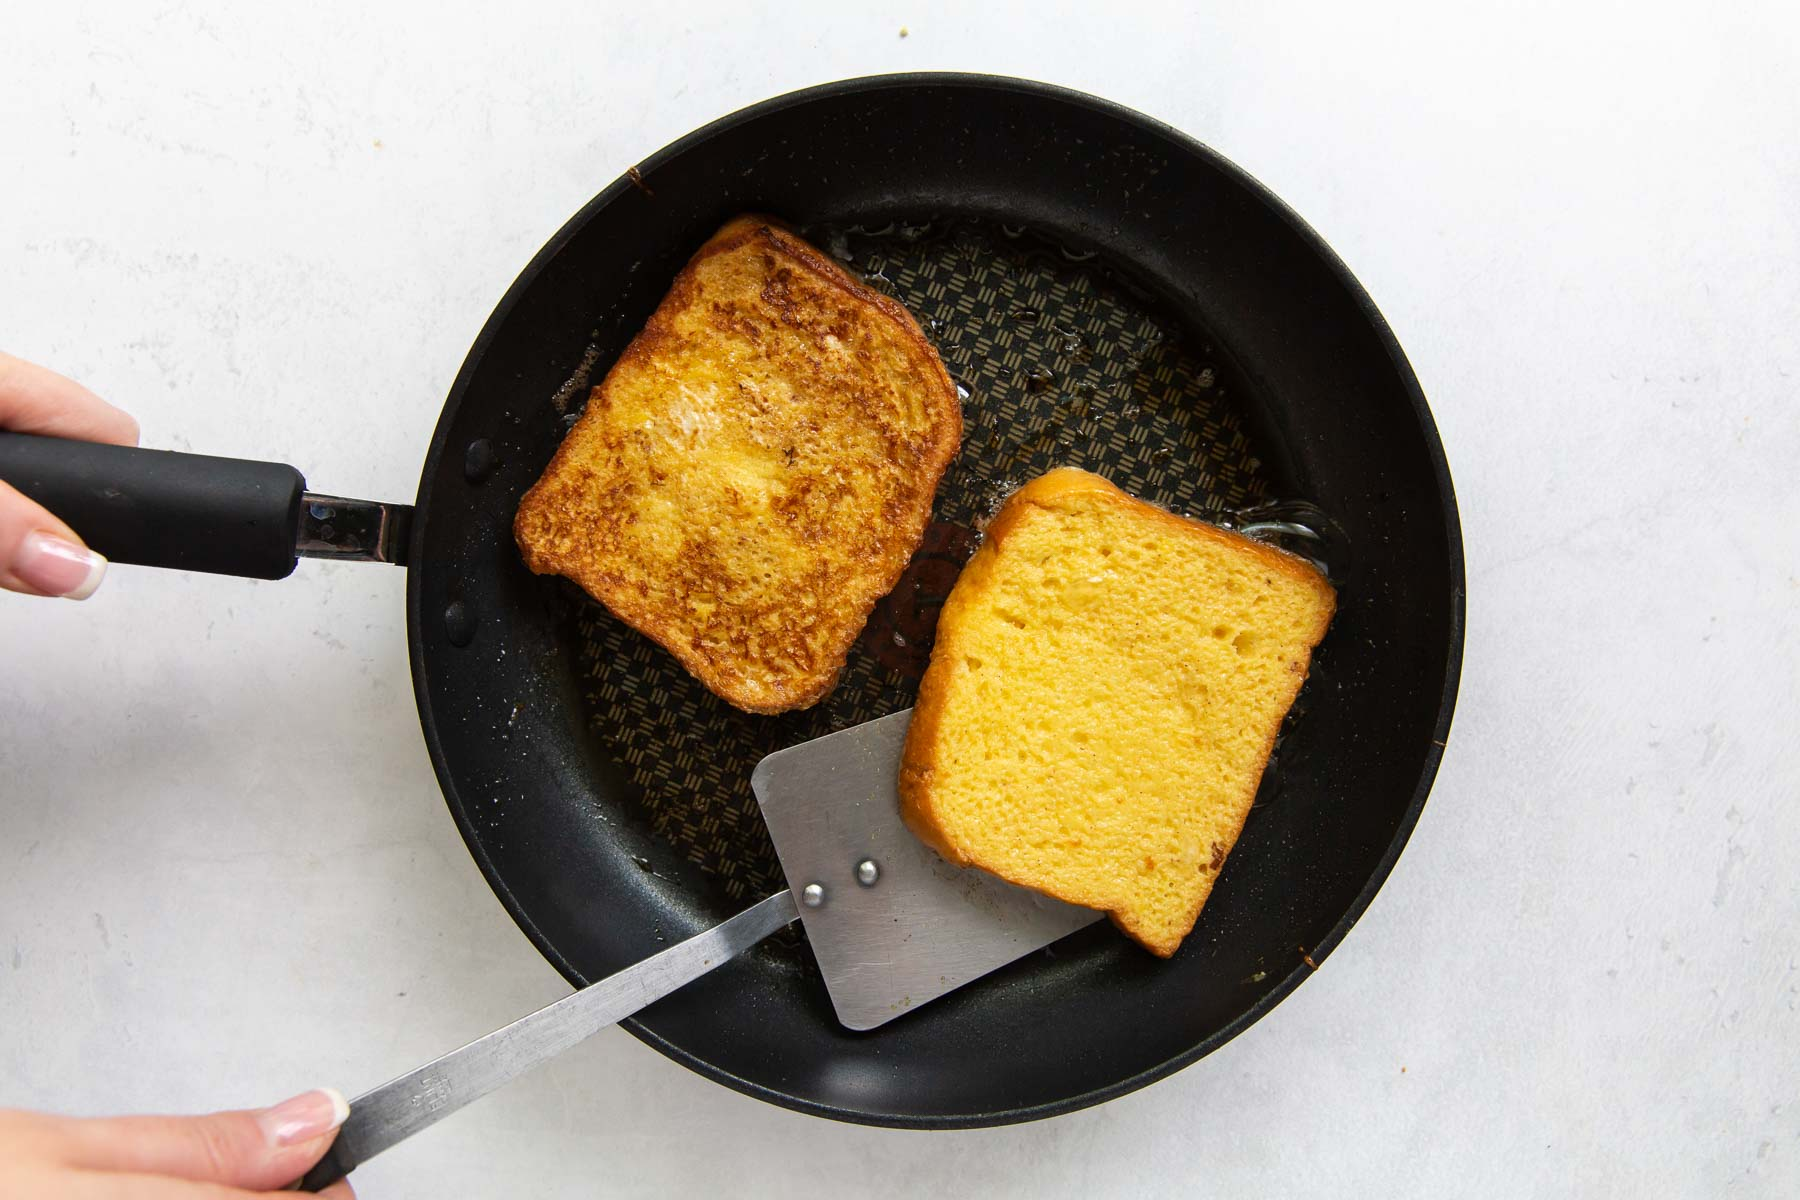 two pieces of french toast cooking in a skillet, with a spatula flipping one piece